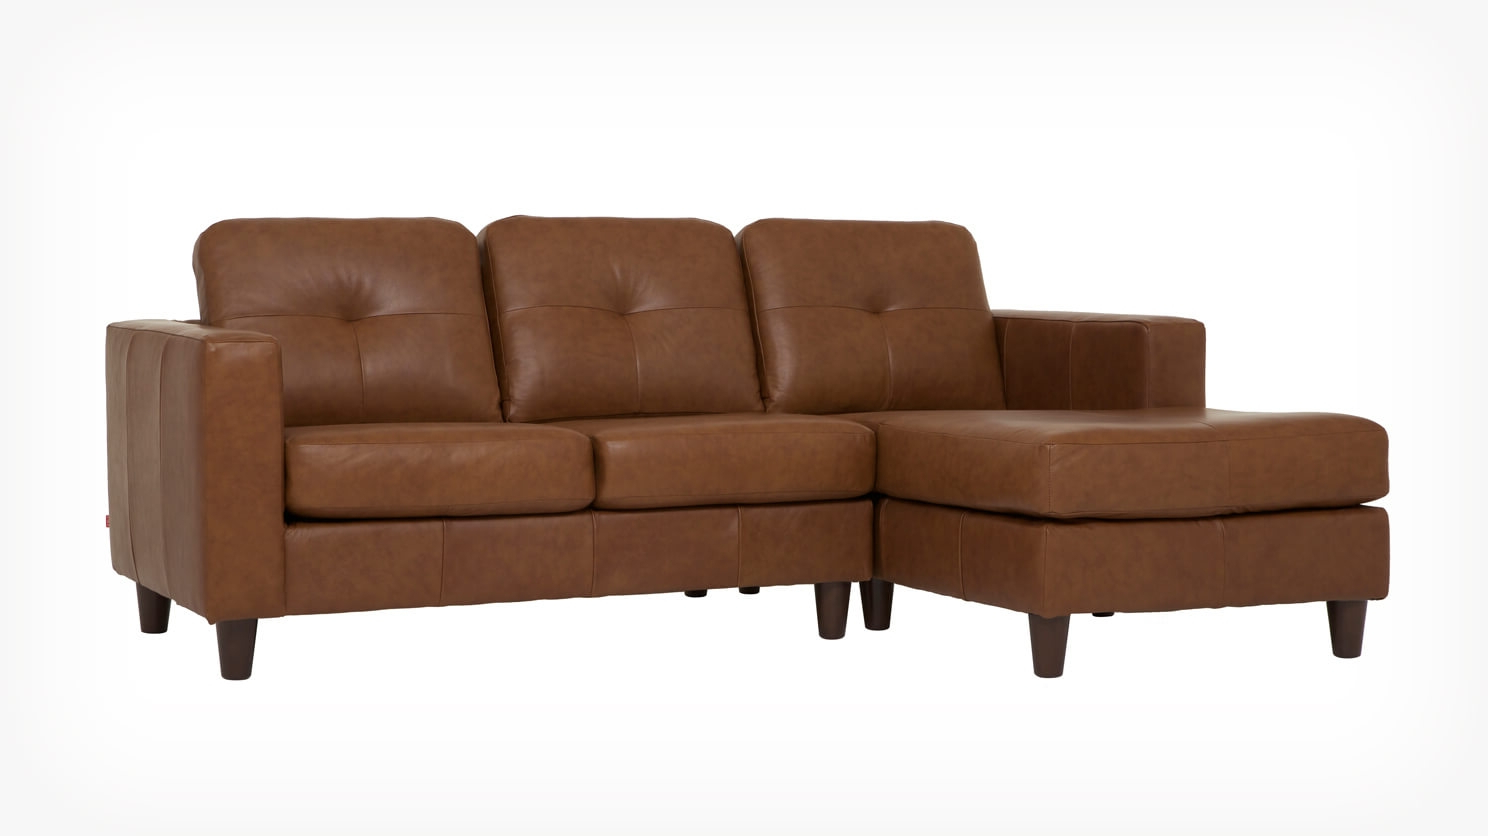 Baci Living Room With Most Current Tatum Dark Grey 2 Piece Sectionals With Laf Chaise (Gallery 9 of 20)